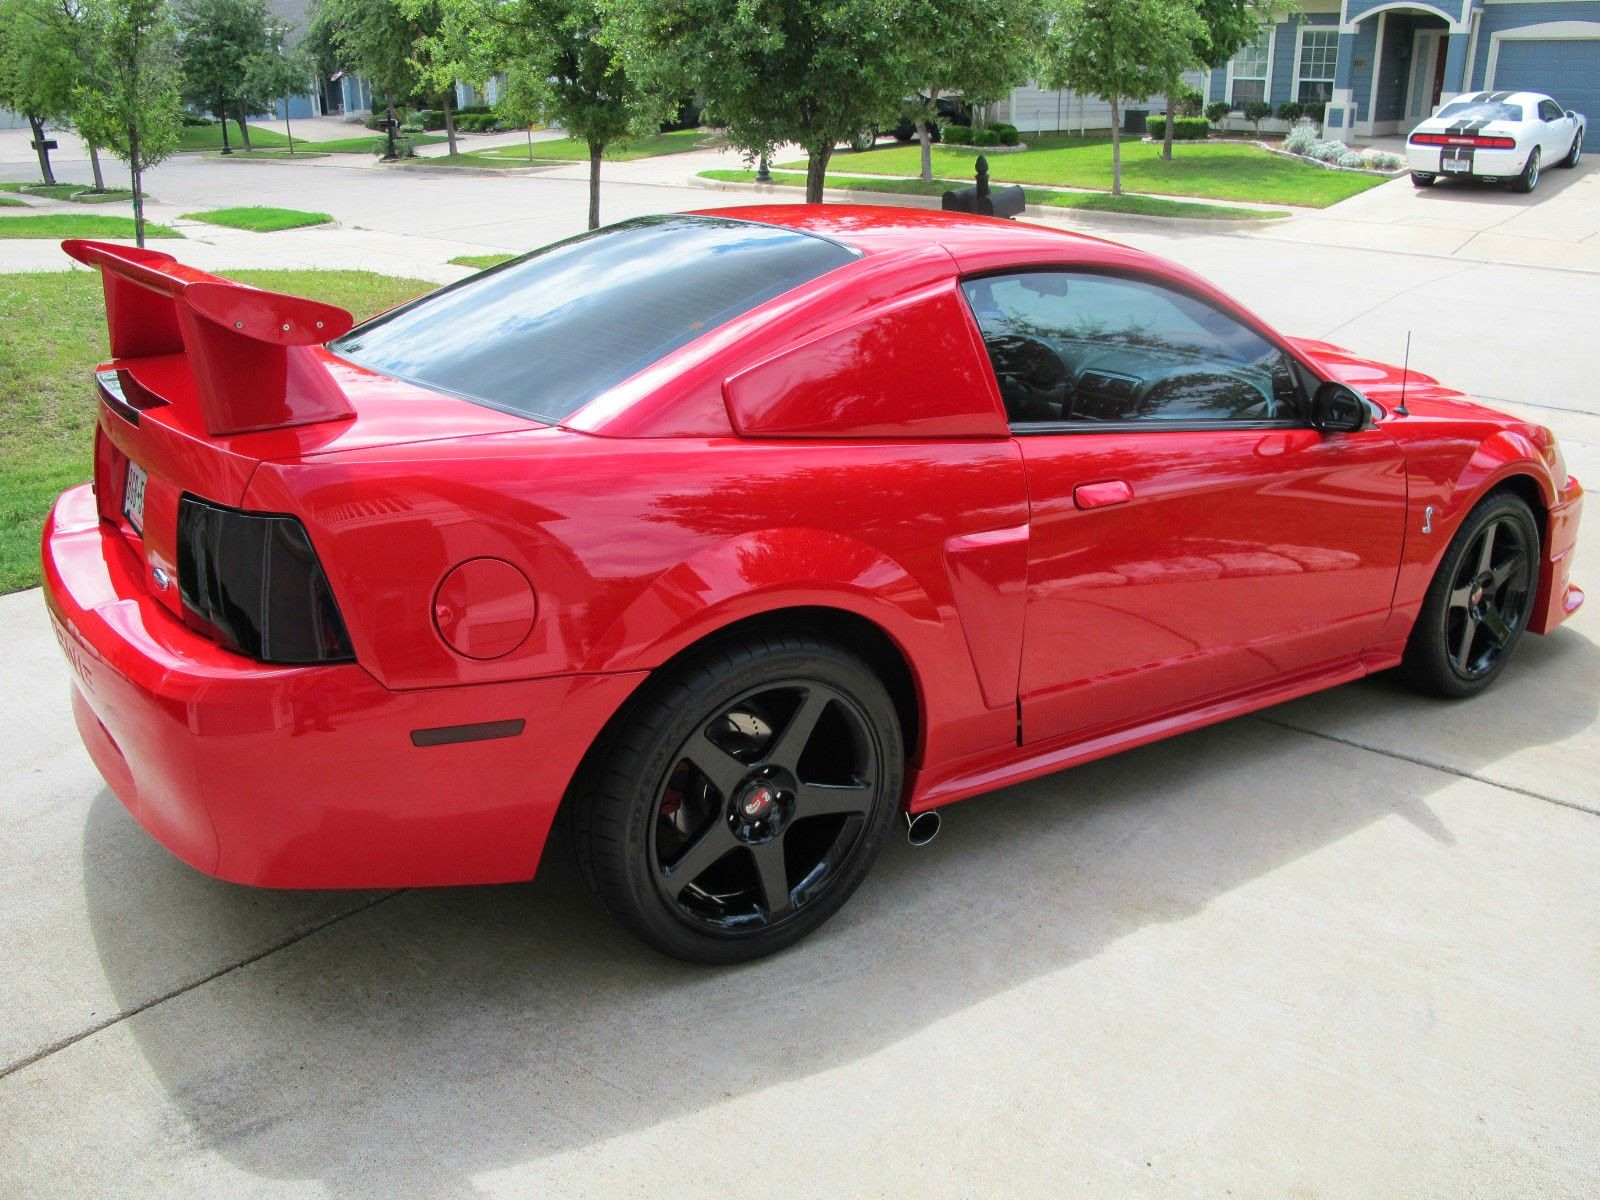 2004 ford mustang charger cars and motorcycles mustangs projects to try